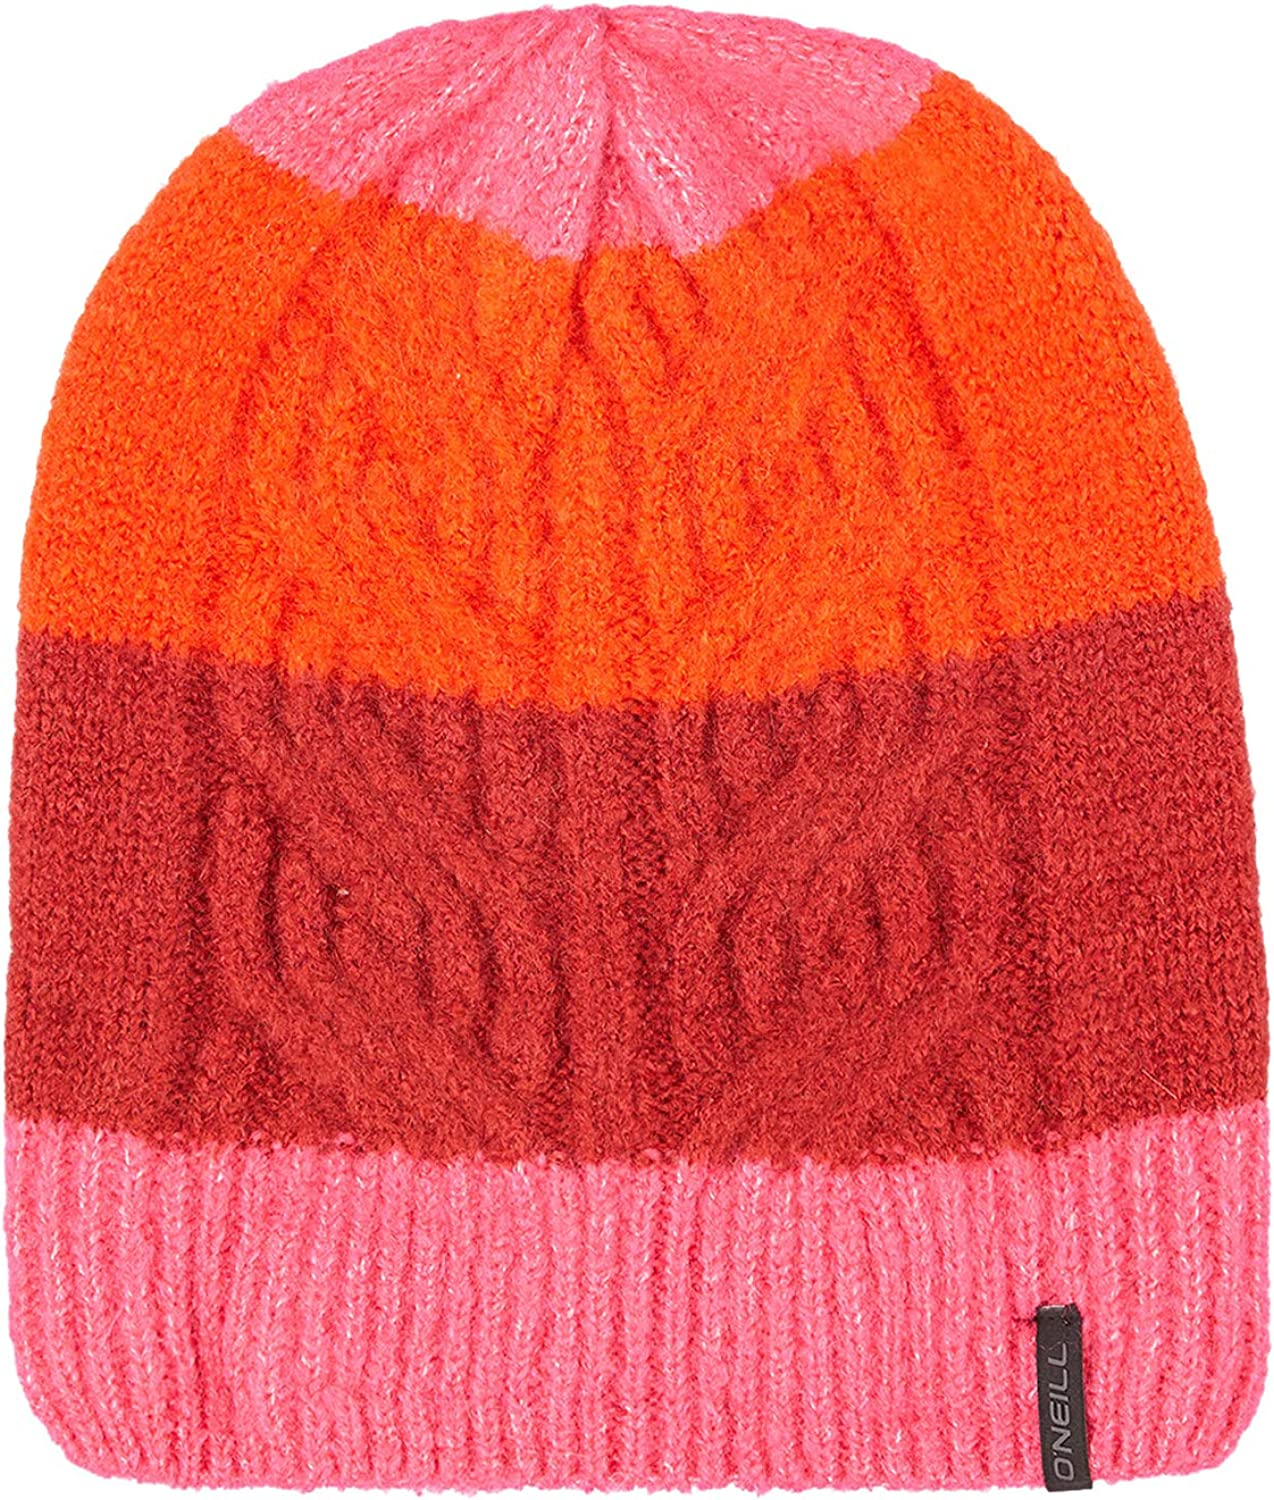 O'NEILL Cable Womens Beanie One Size Cabaret